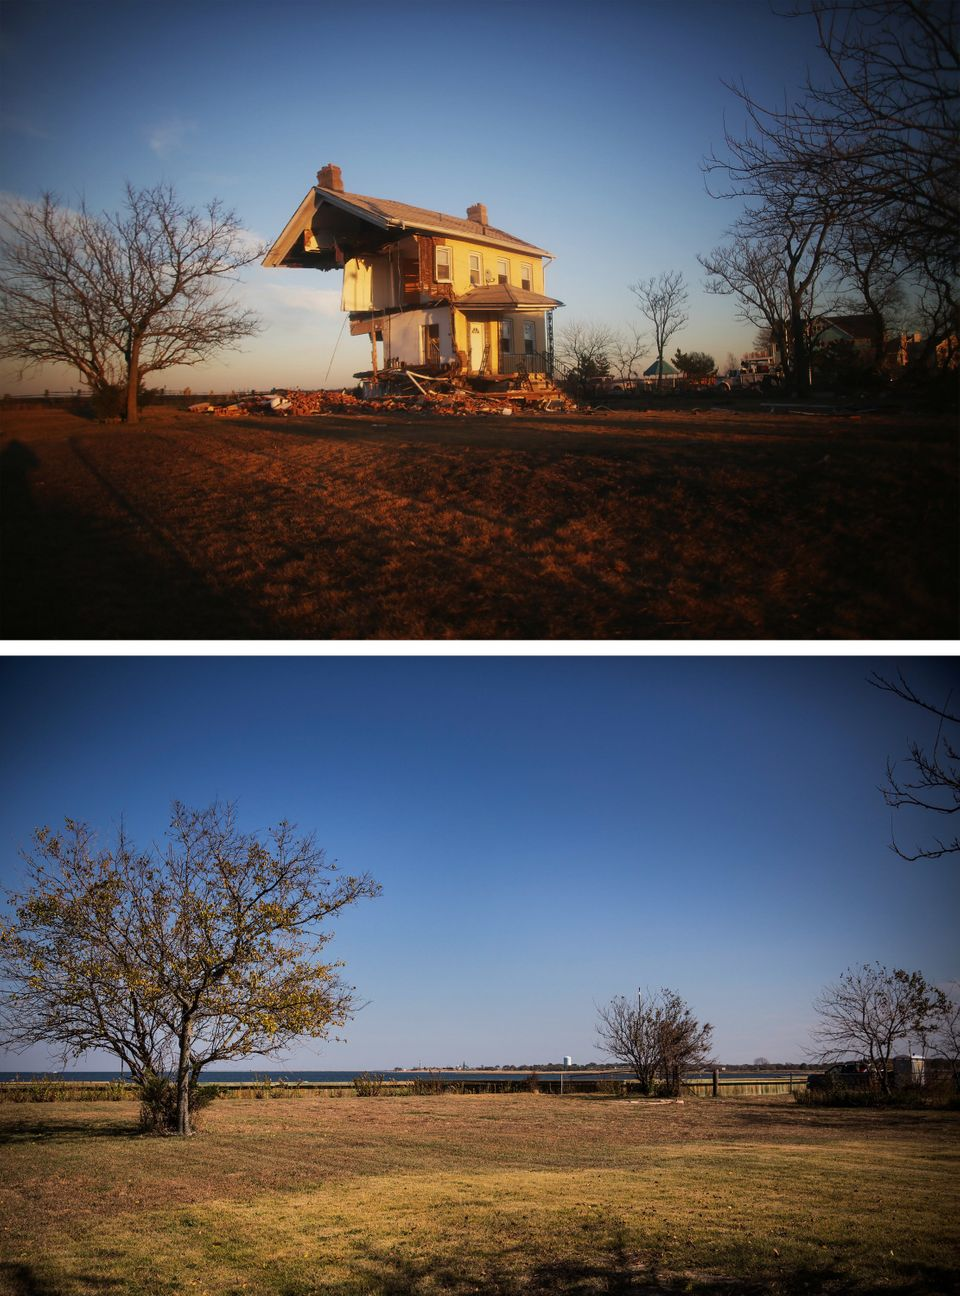 UNION BEACH, NJ - NOVEMBER 21: (top) The iconic Princess Cottage, built in 1855, remains standing after being ravaged by floo